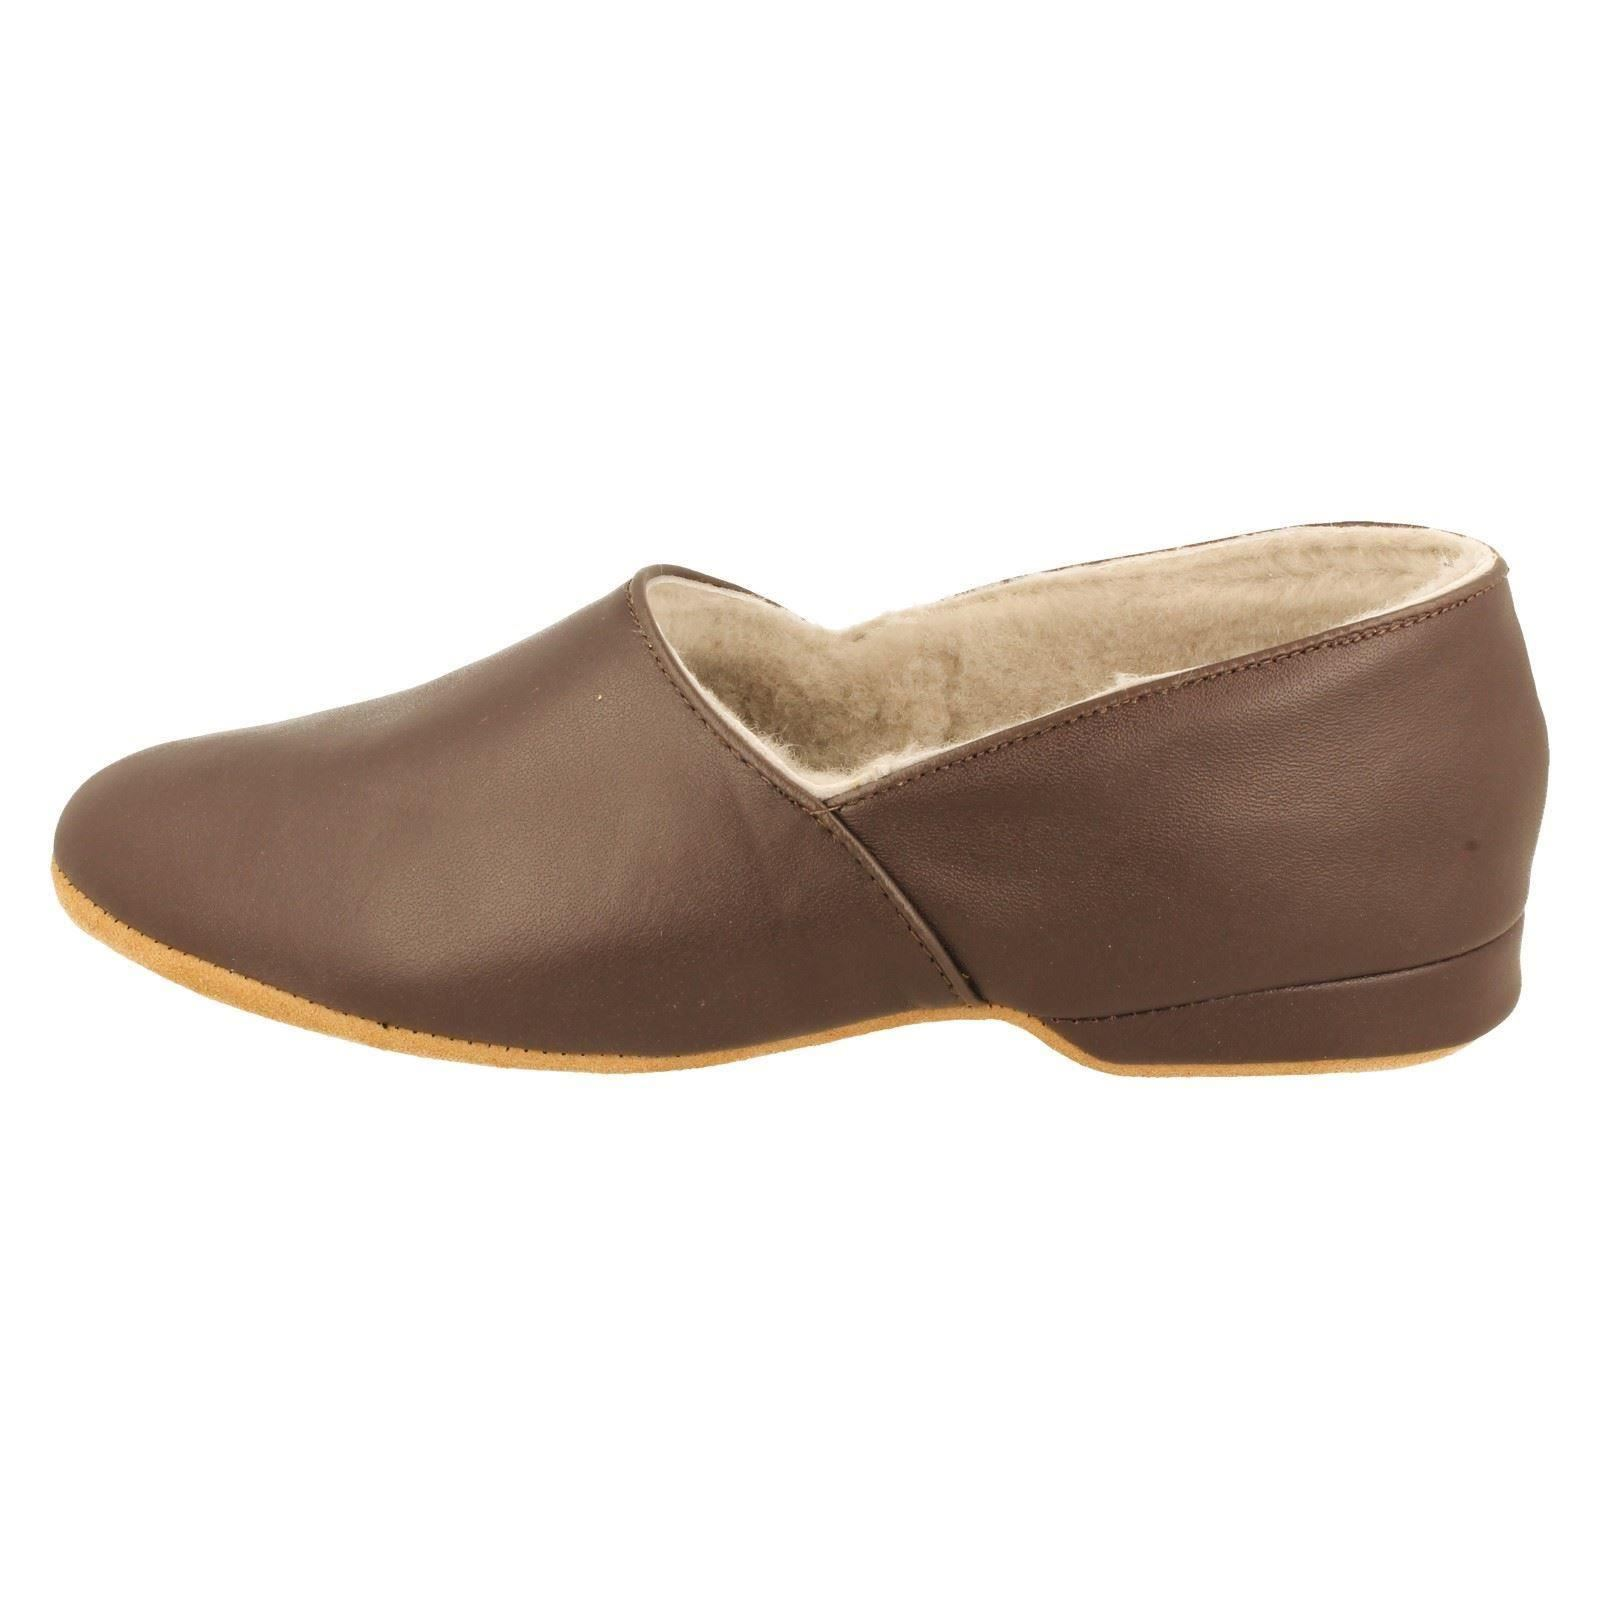 Mens Draper Warm Linned Slippers The Style Philip-W